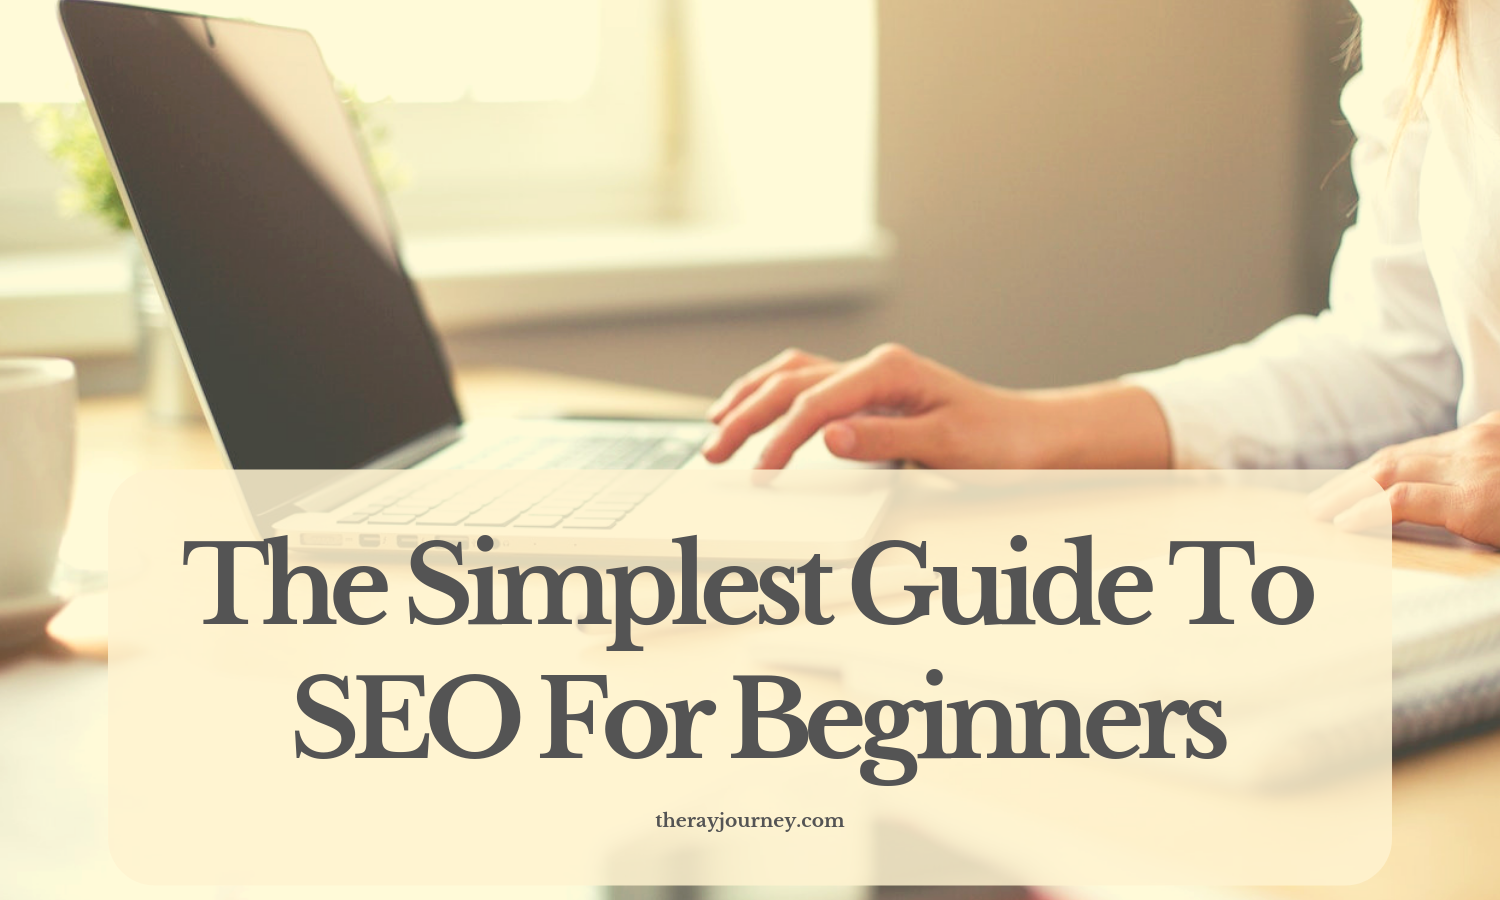 The Simplest Guide To SEO For Beginners